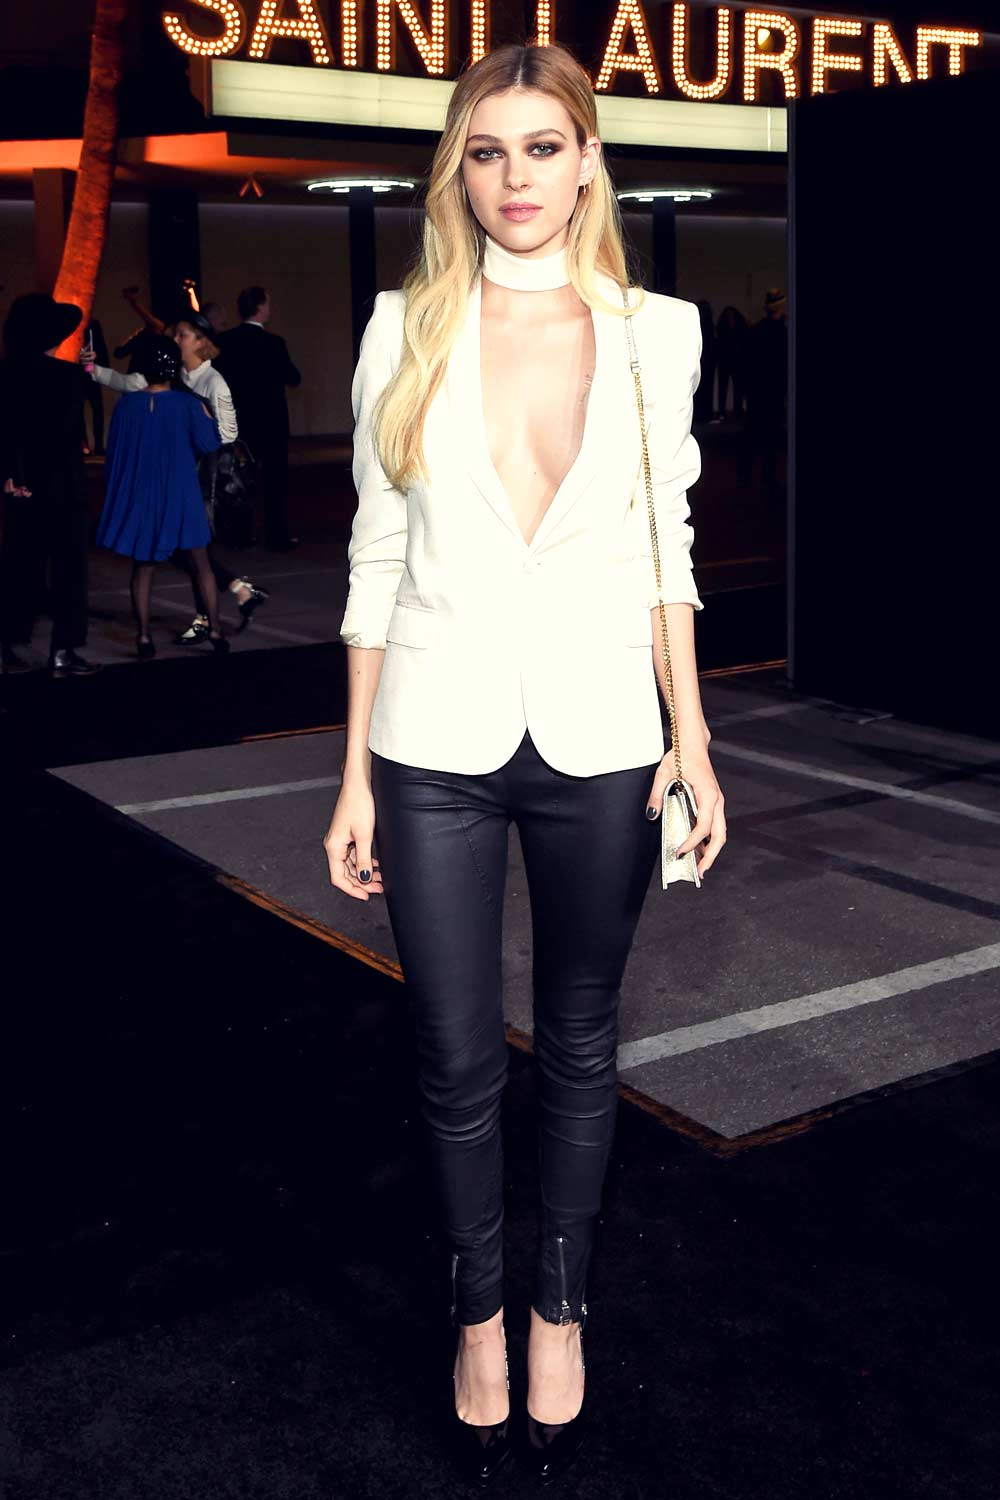 Nicola Peltz attends Saint Laurent show